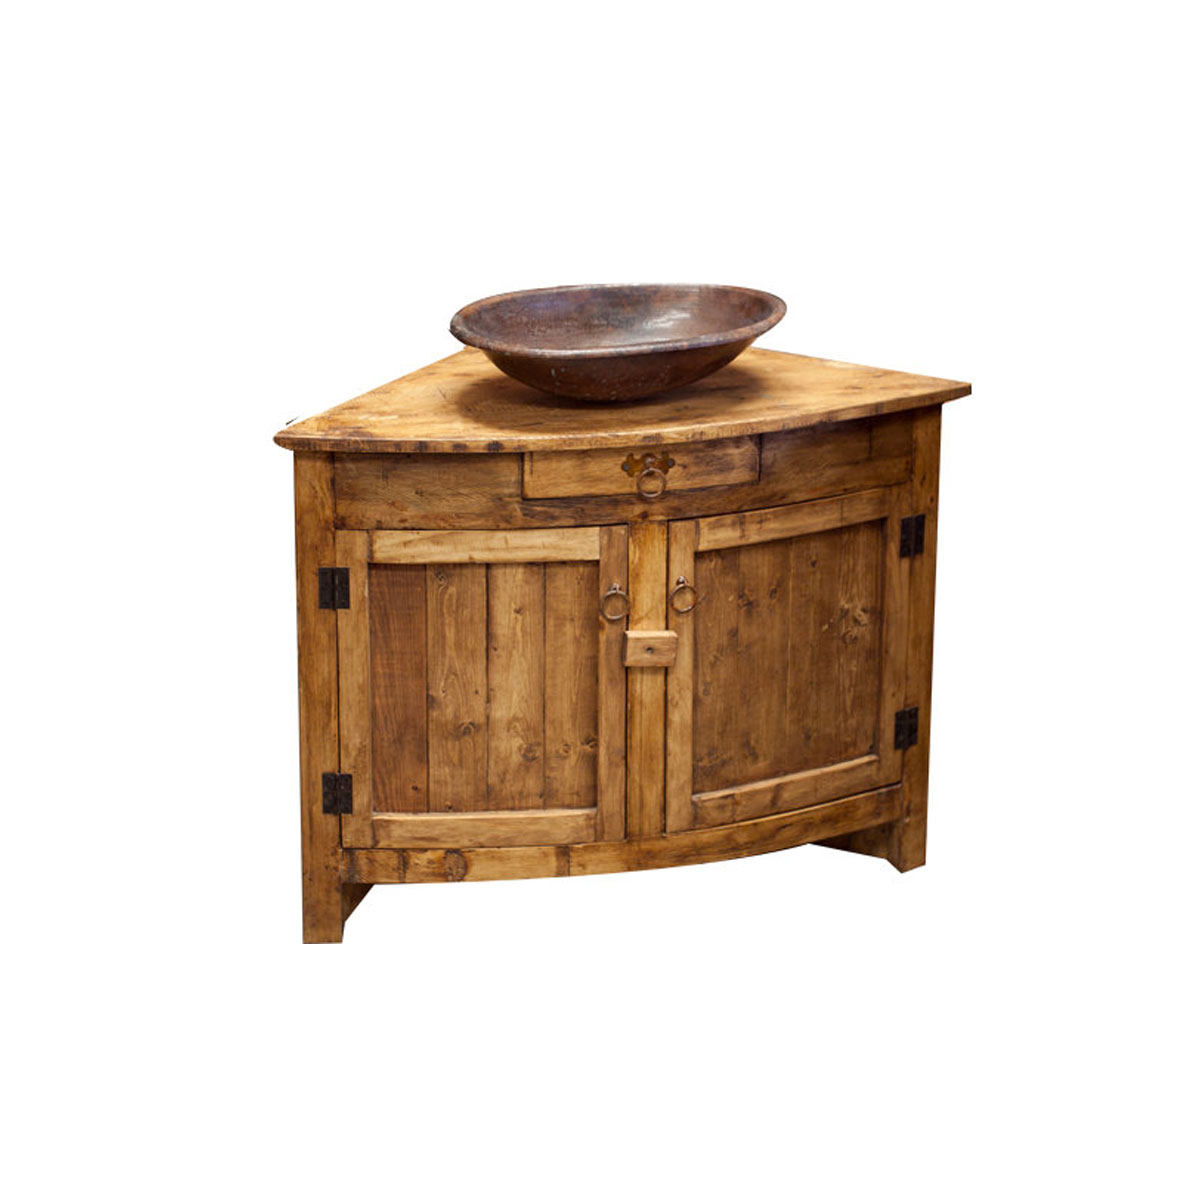 Buy Rustic Corner Vanity Online  Perfect for Small Bathroom